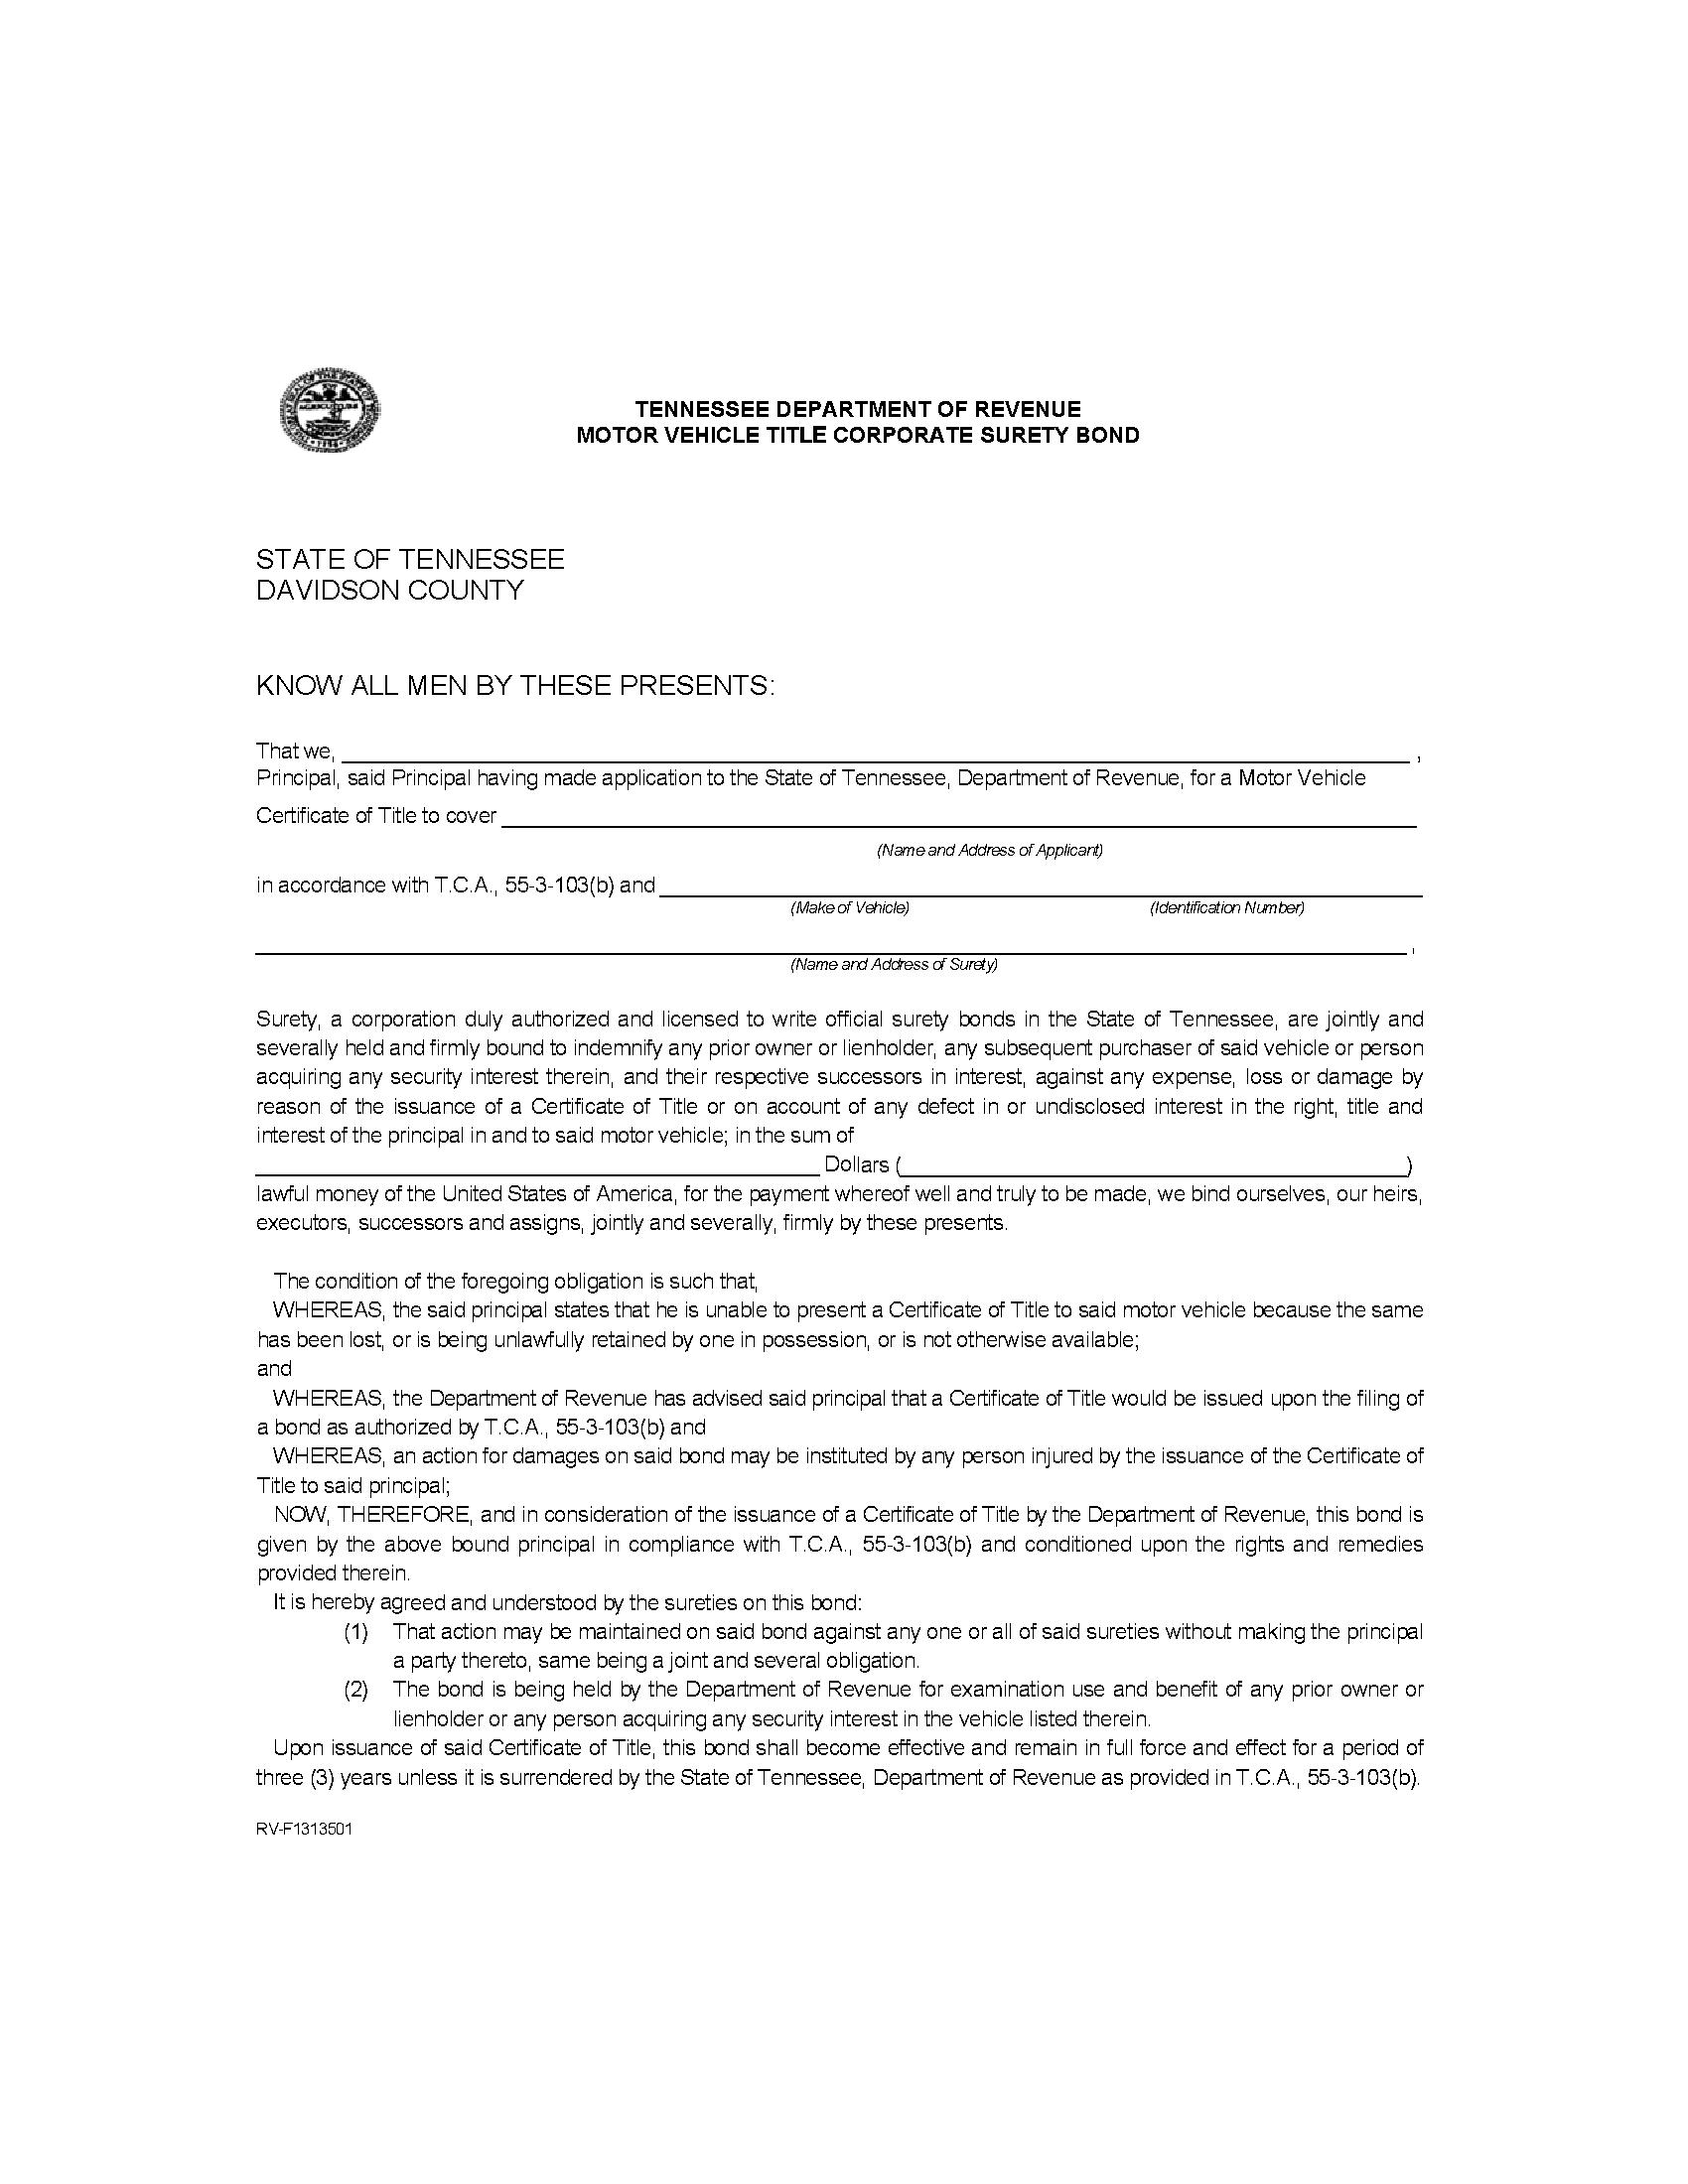 State of Tennessee Motor Vehicle Certificate of Title sample image